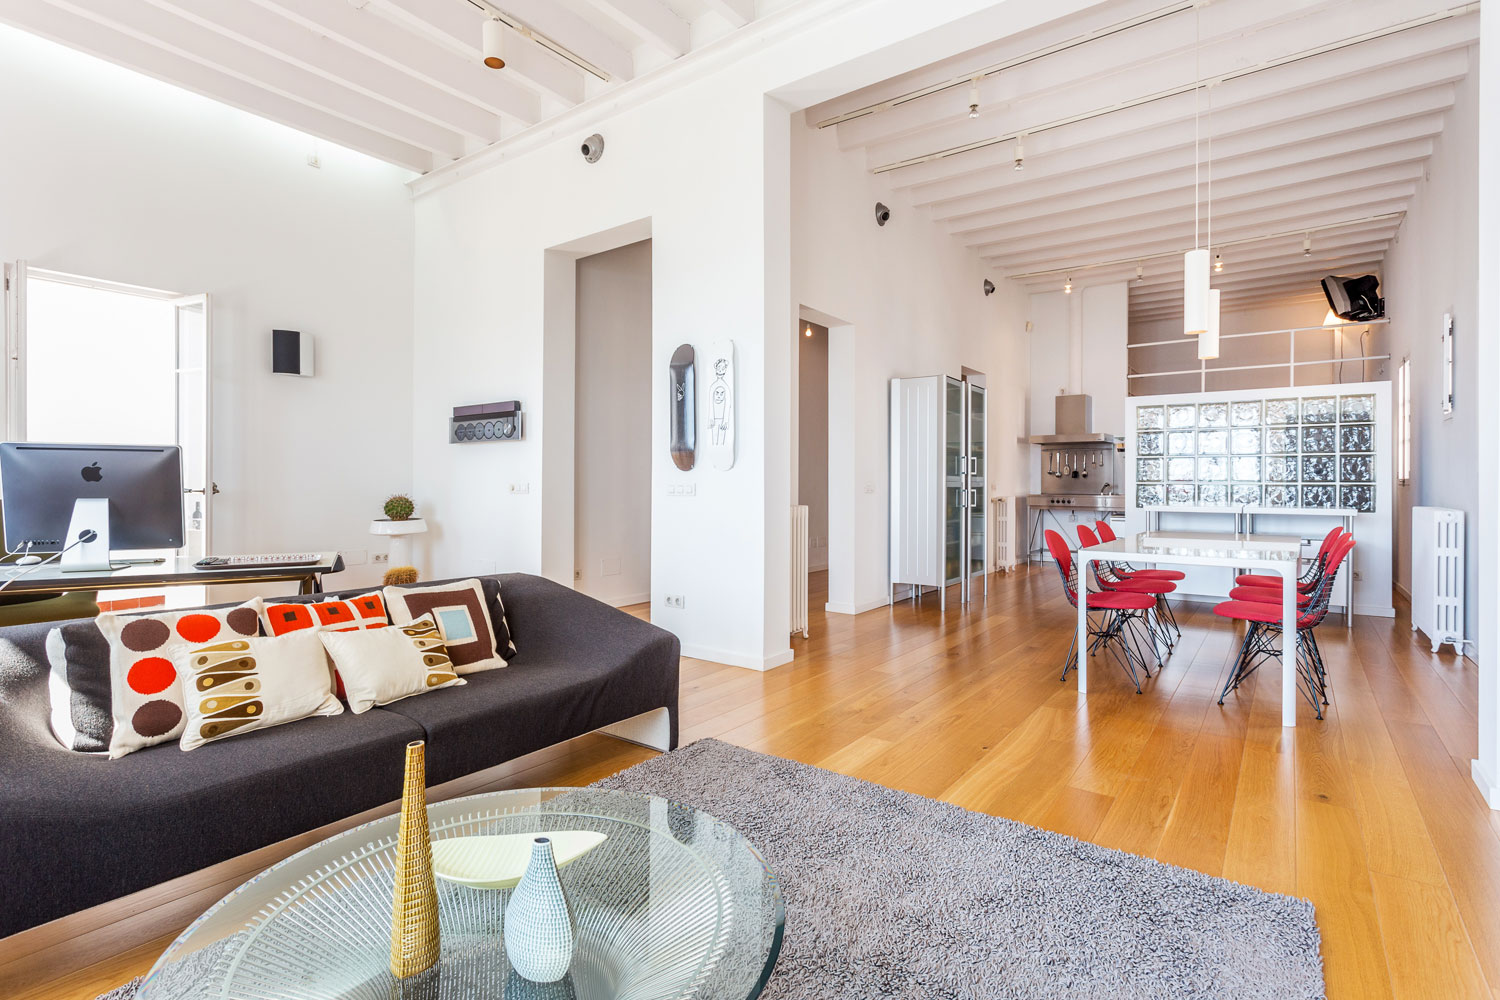 Ref 7290 – Spacious Loft for Rent, Palma, Mallorca